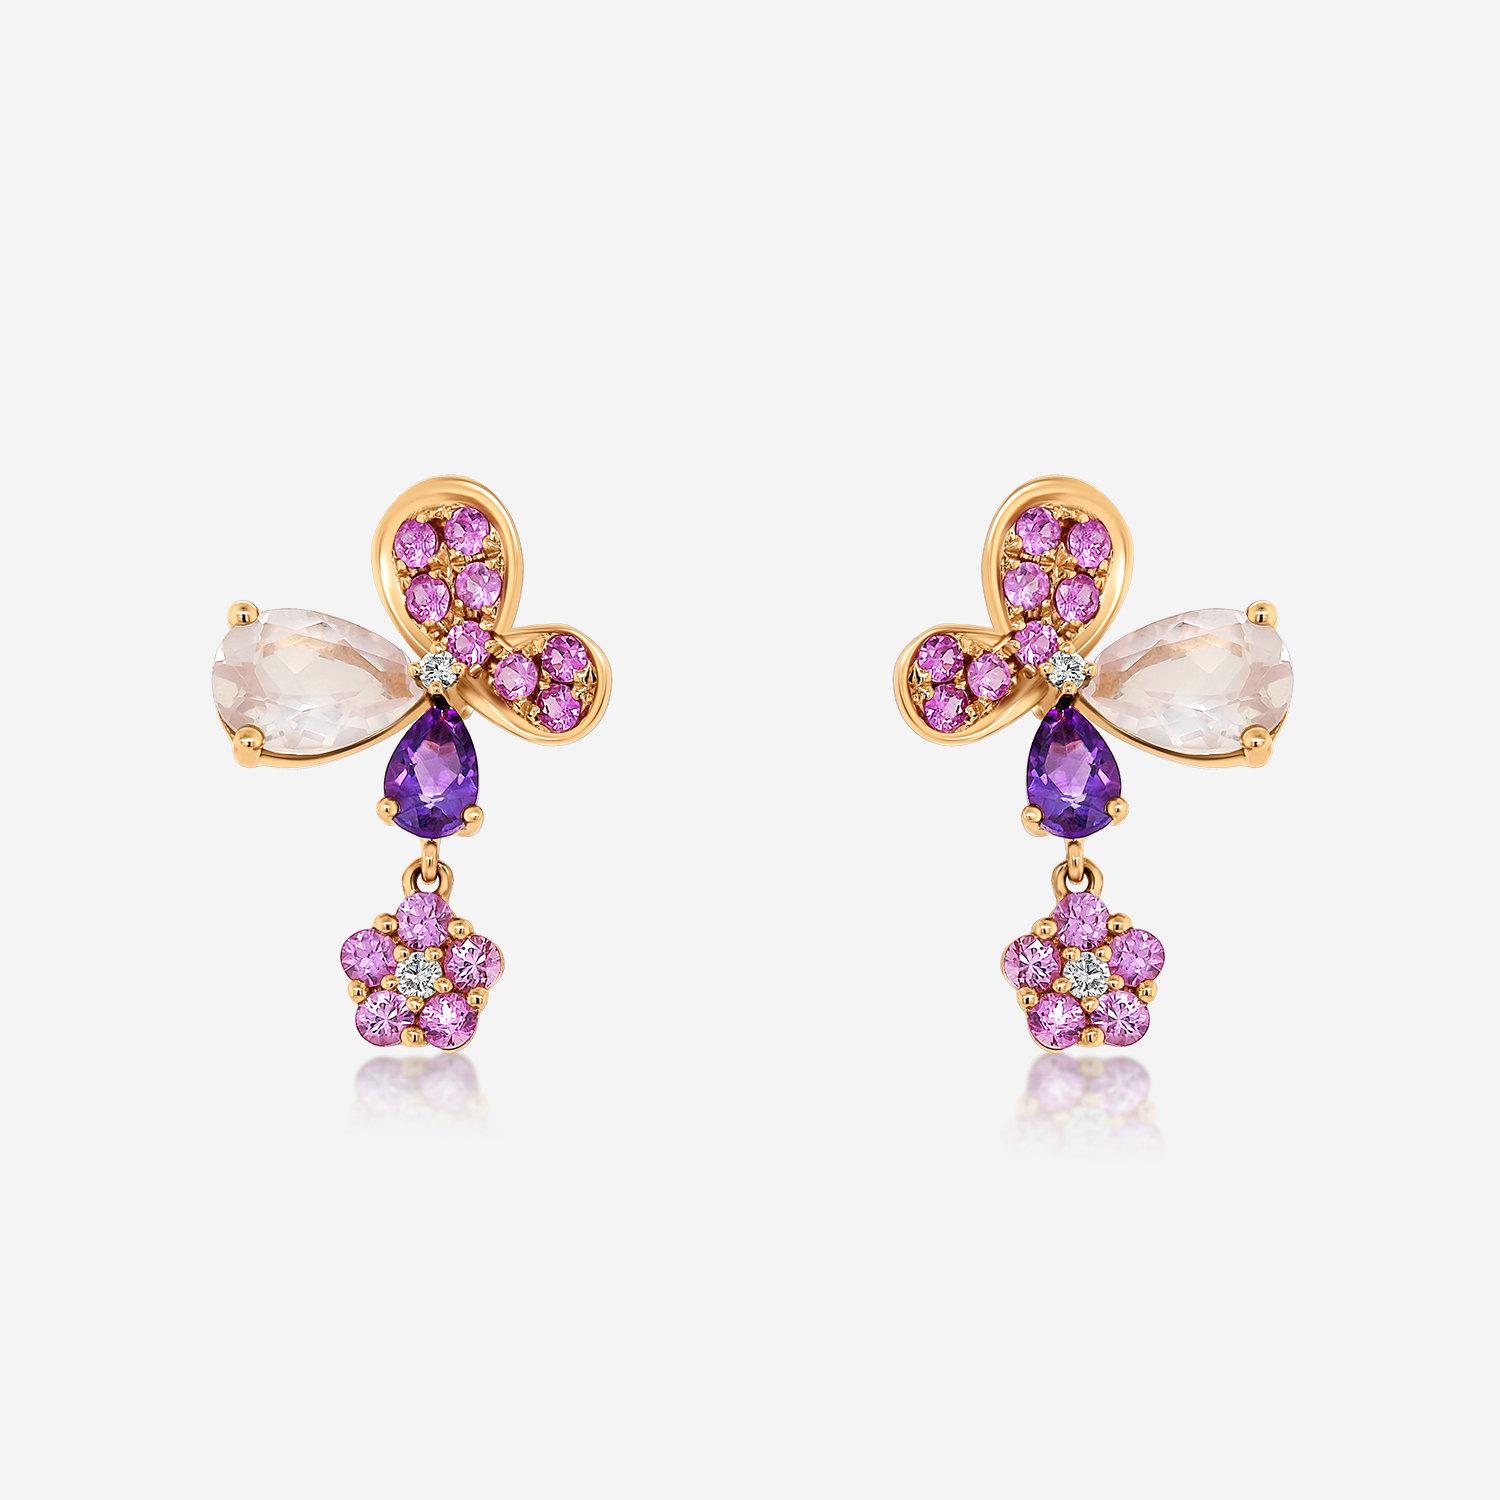 Diamond Earrings Diamond earrings with sapphire, amethyst and quartz Yellow Pink sapphire <br/>Amethyst <br/>Pink Quartz <br/>White Diamonds